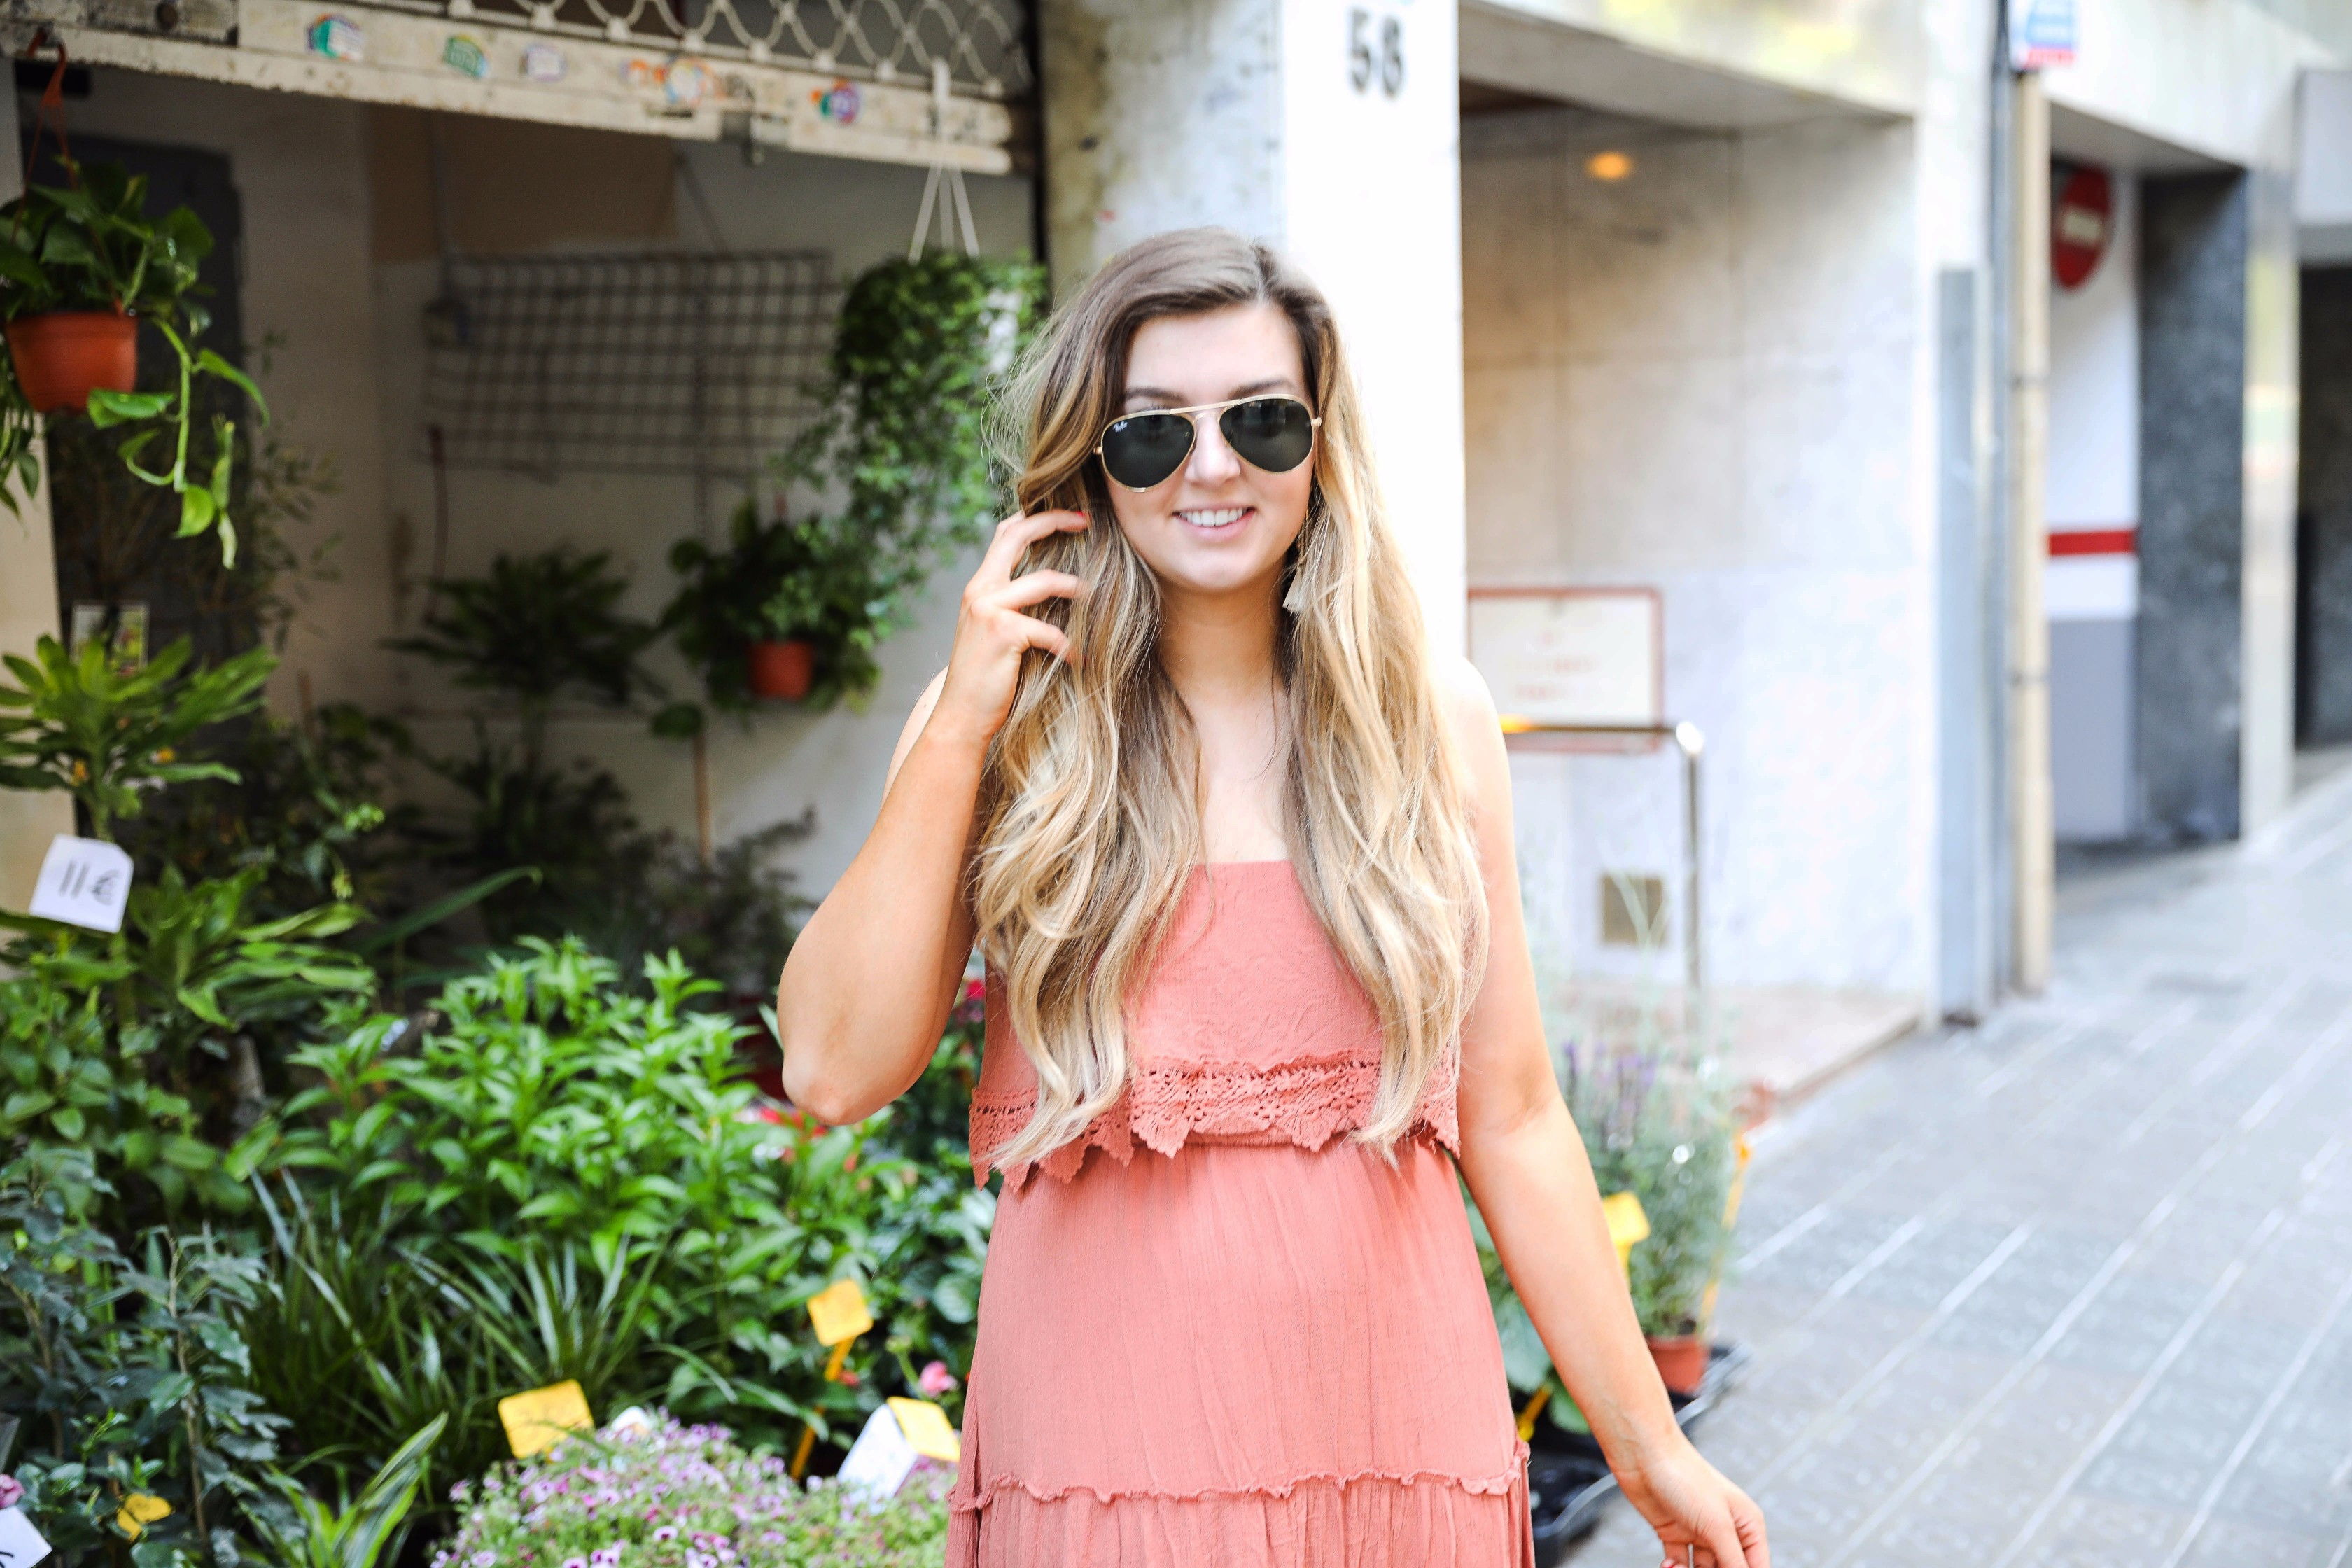 Coral maxi dress in barcelona spain fresh flower market by fashion blogger lauren lindmark daily dose of charm dailydoseofcharm.com